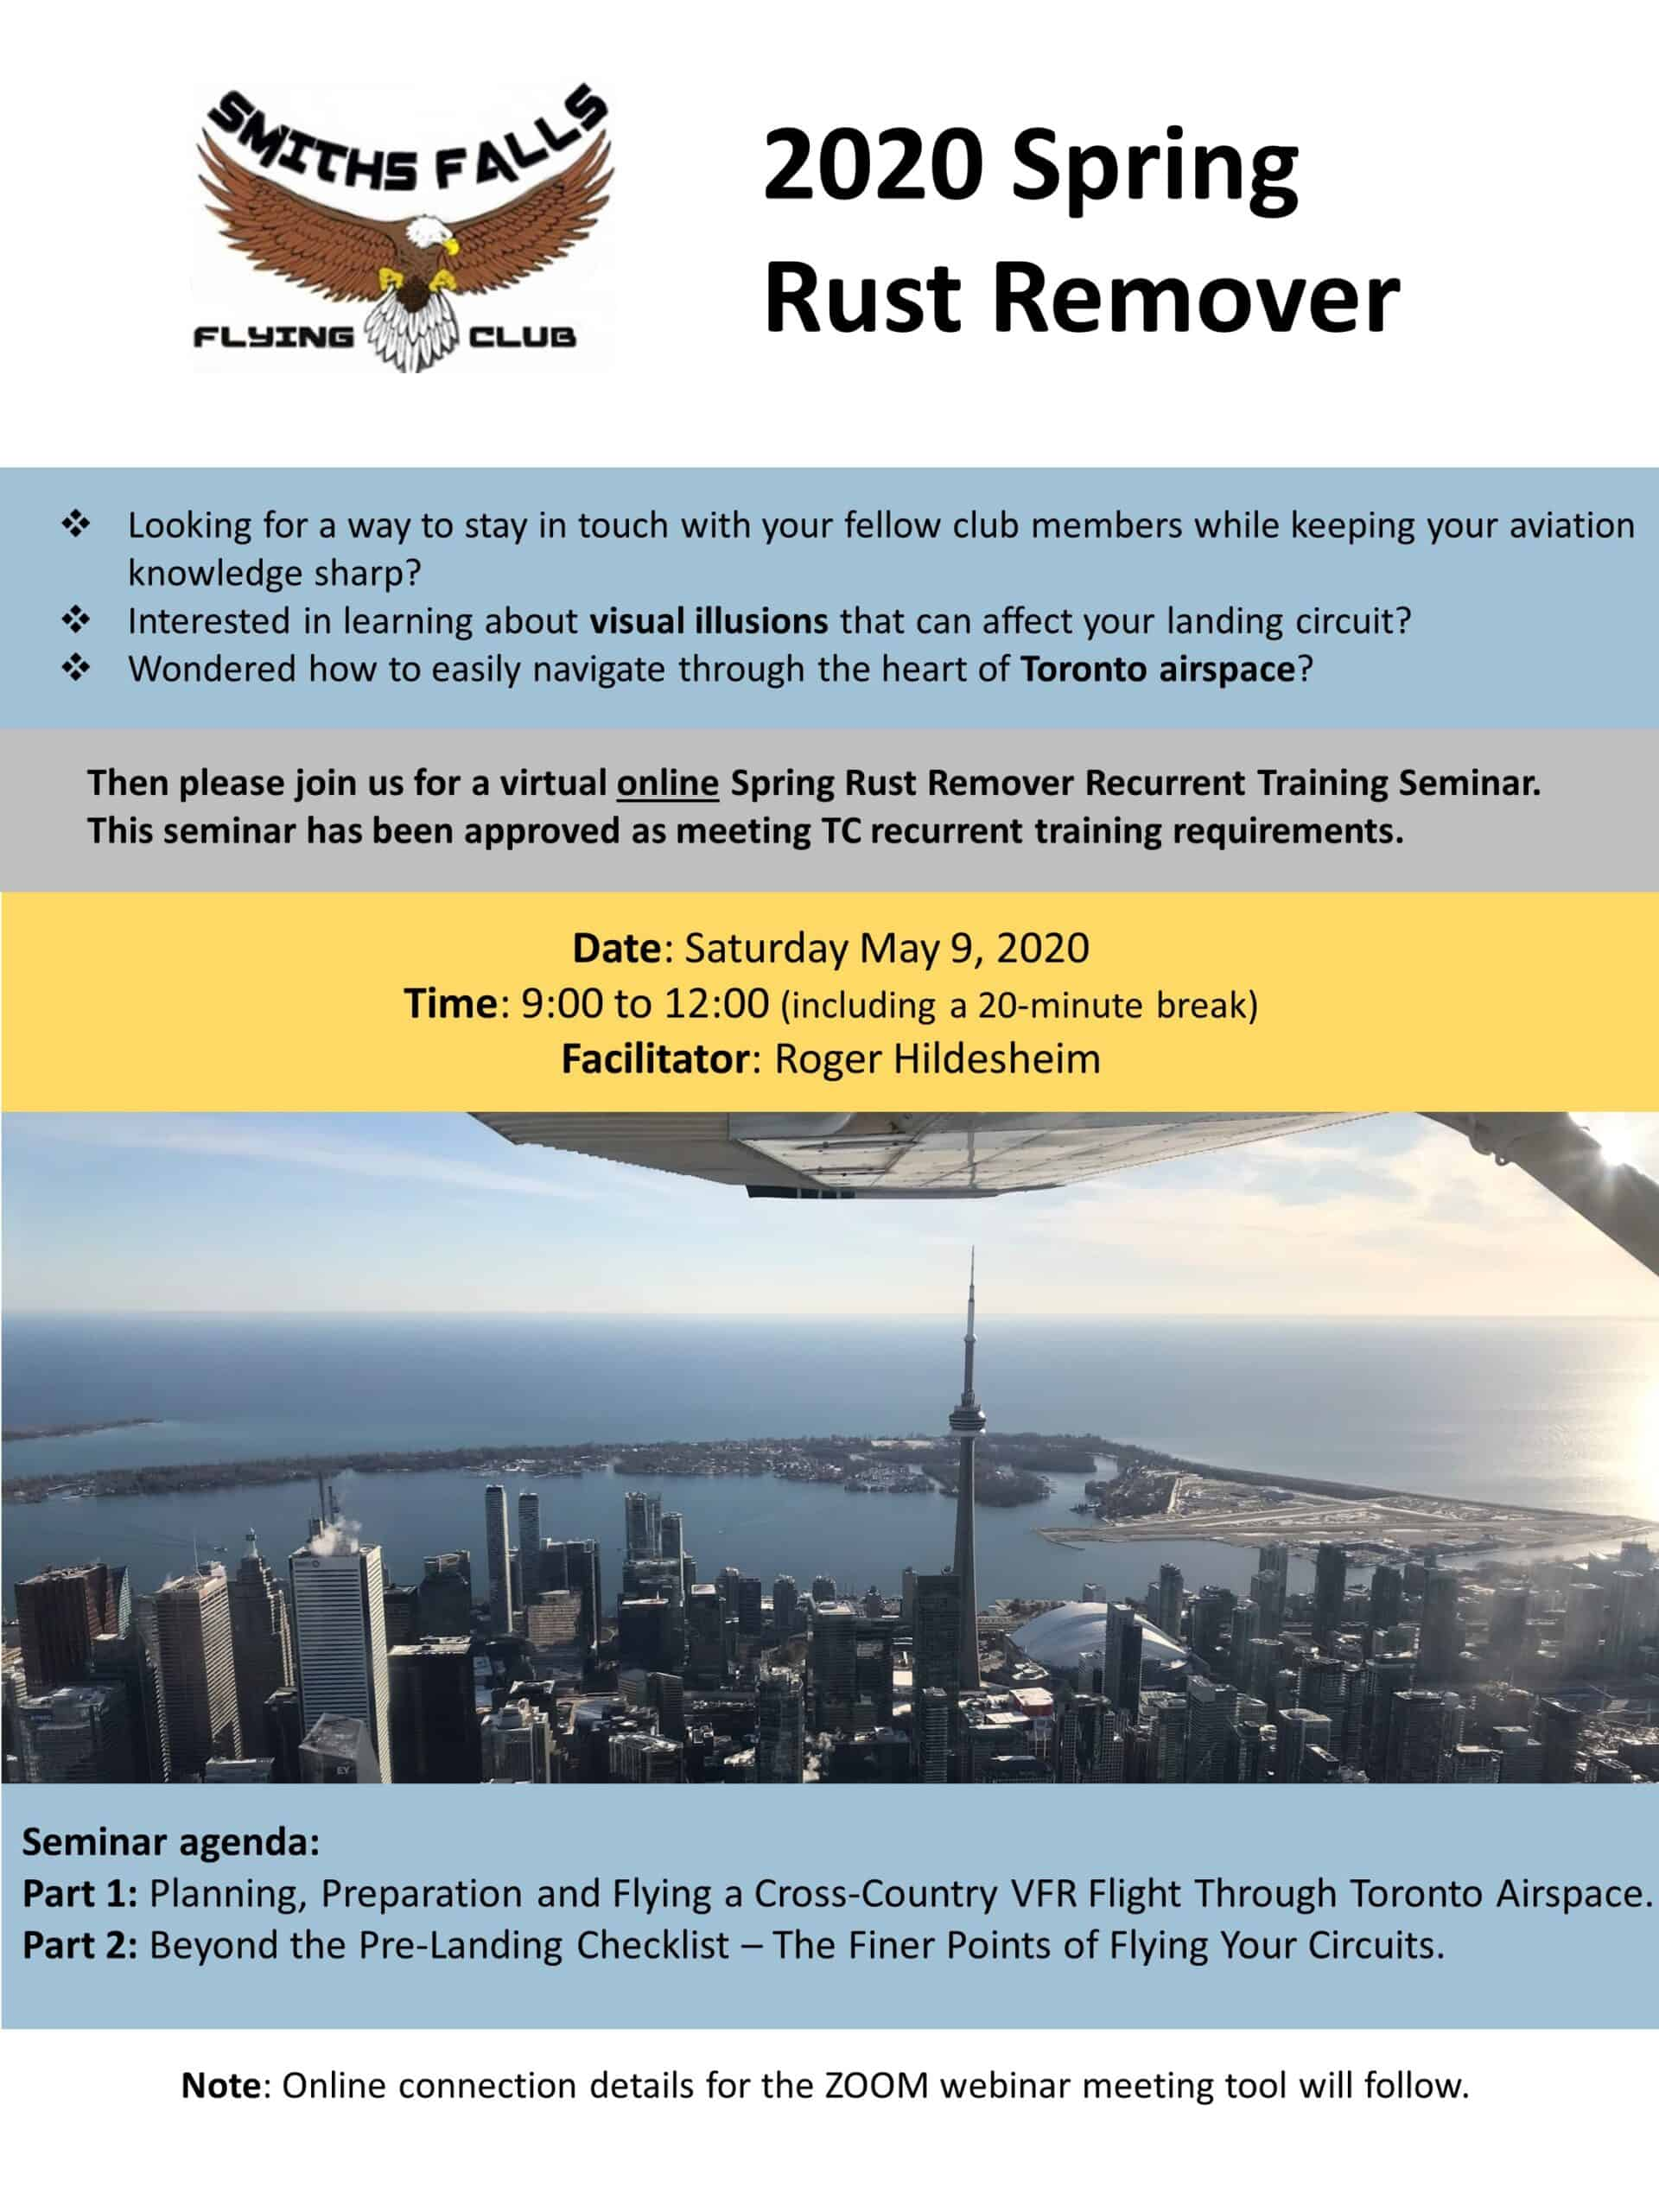 SFFC 2020 Spring Rust Remover